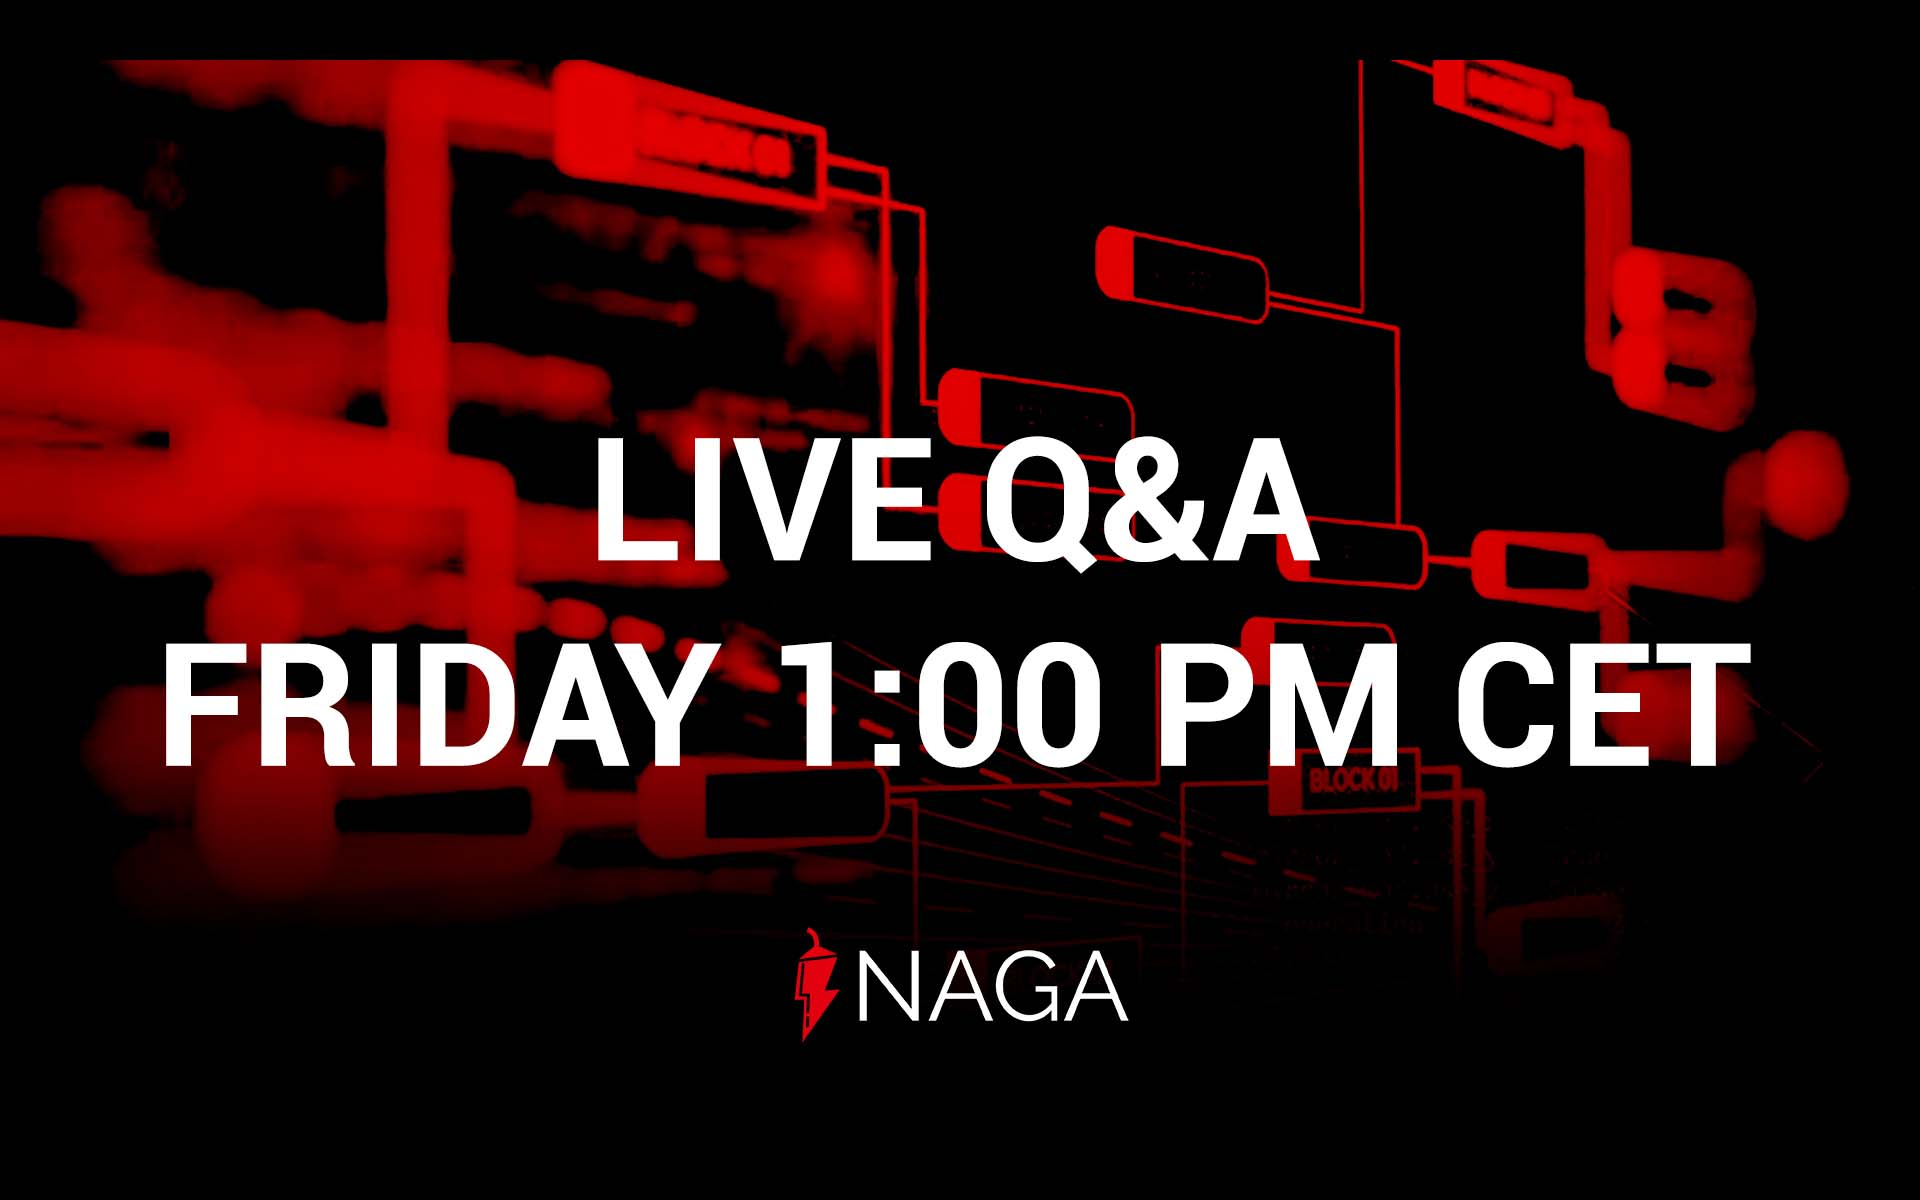 NAGA Q&A Live Event - Friday 1:00 PM CET